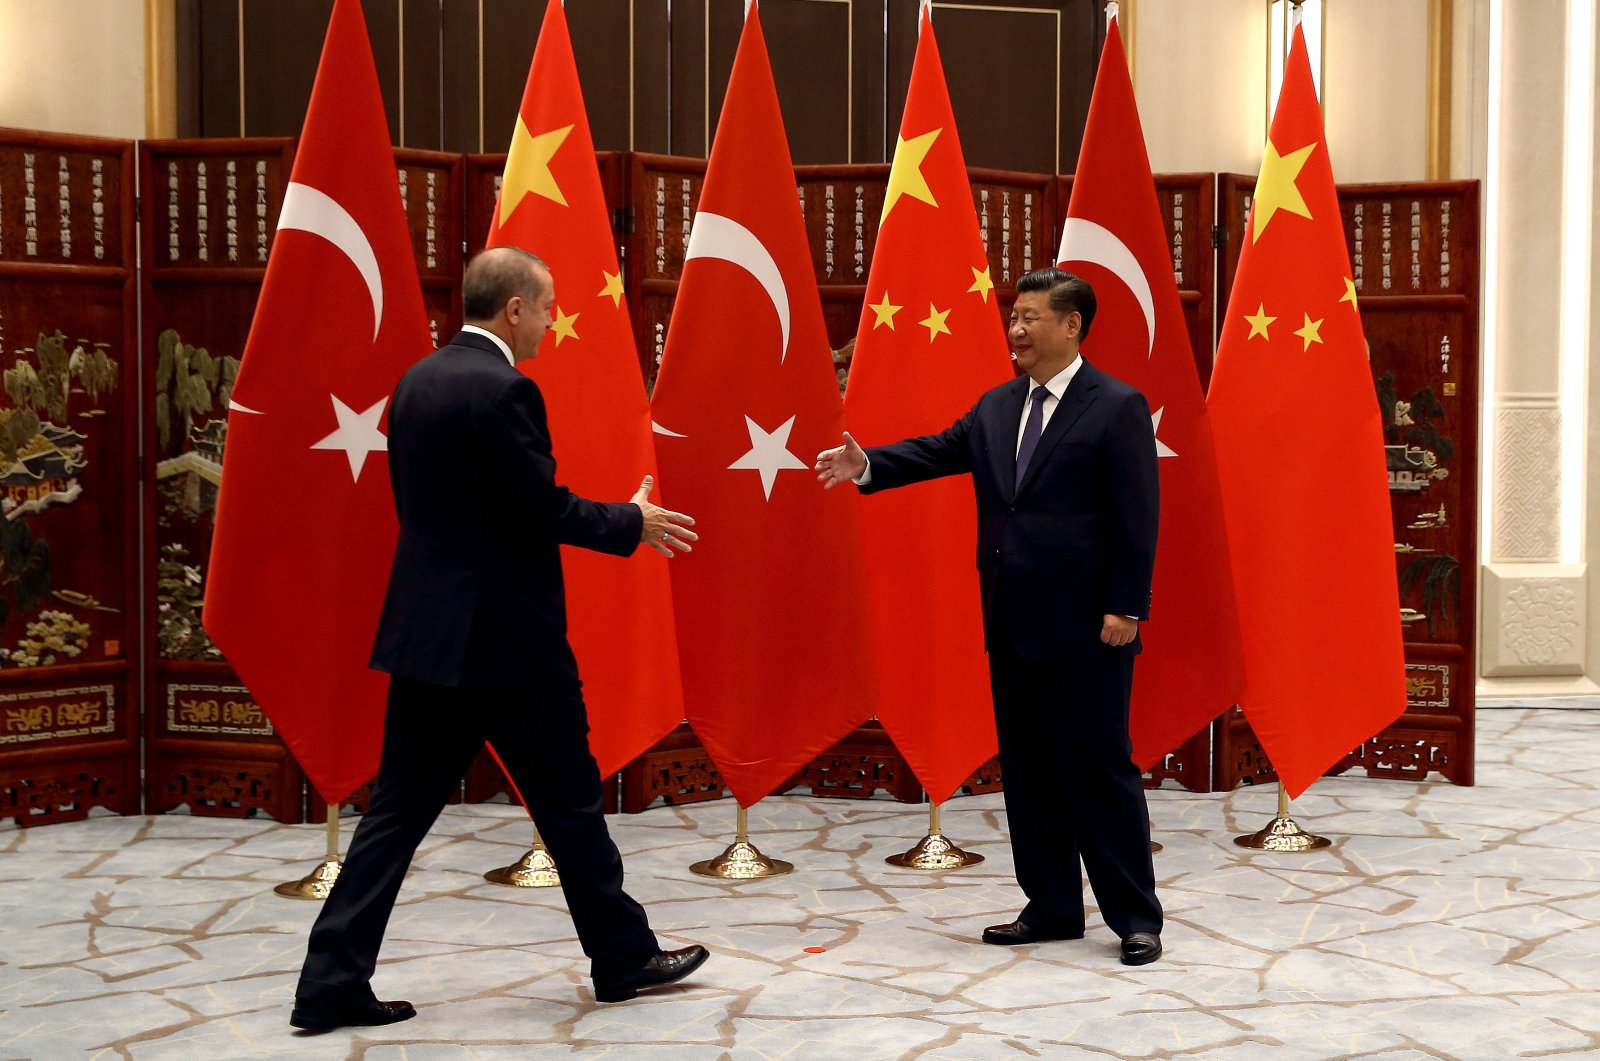 President Recep Tayyip Erdoğan (L) meets with Chinese President Xi Jinping in Hangzhou, China, Aug. 3, 2016 (Sabah File Photo)